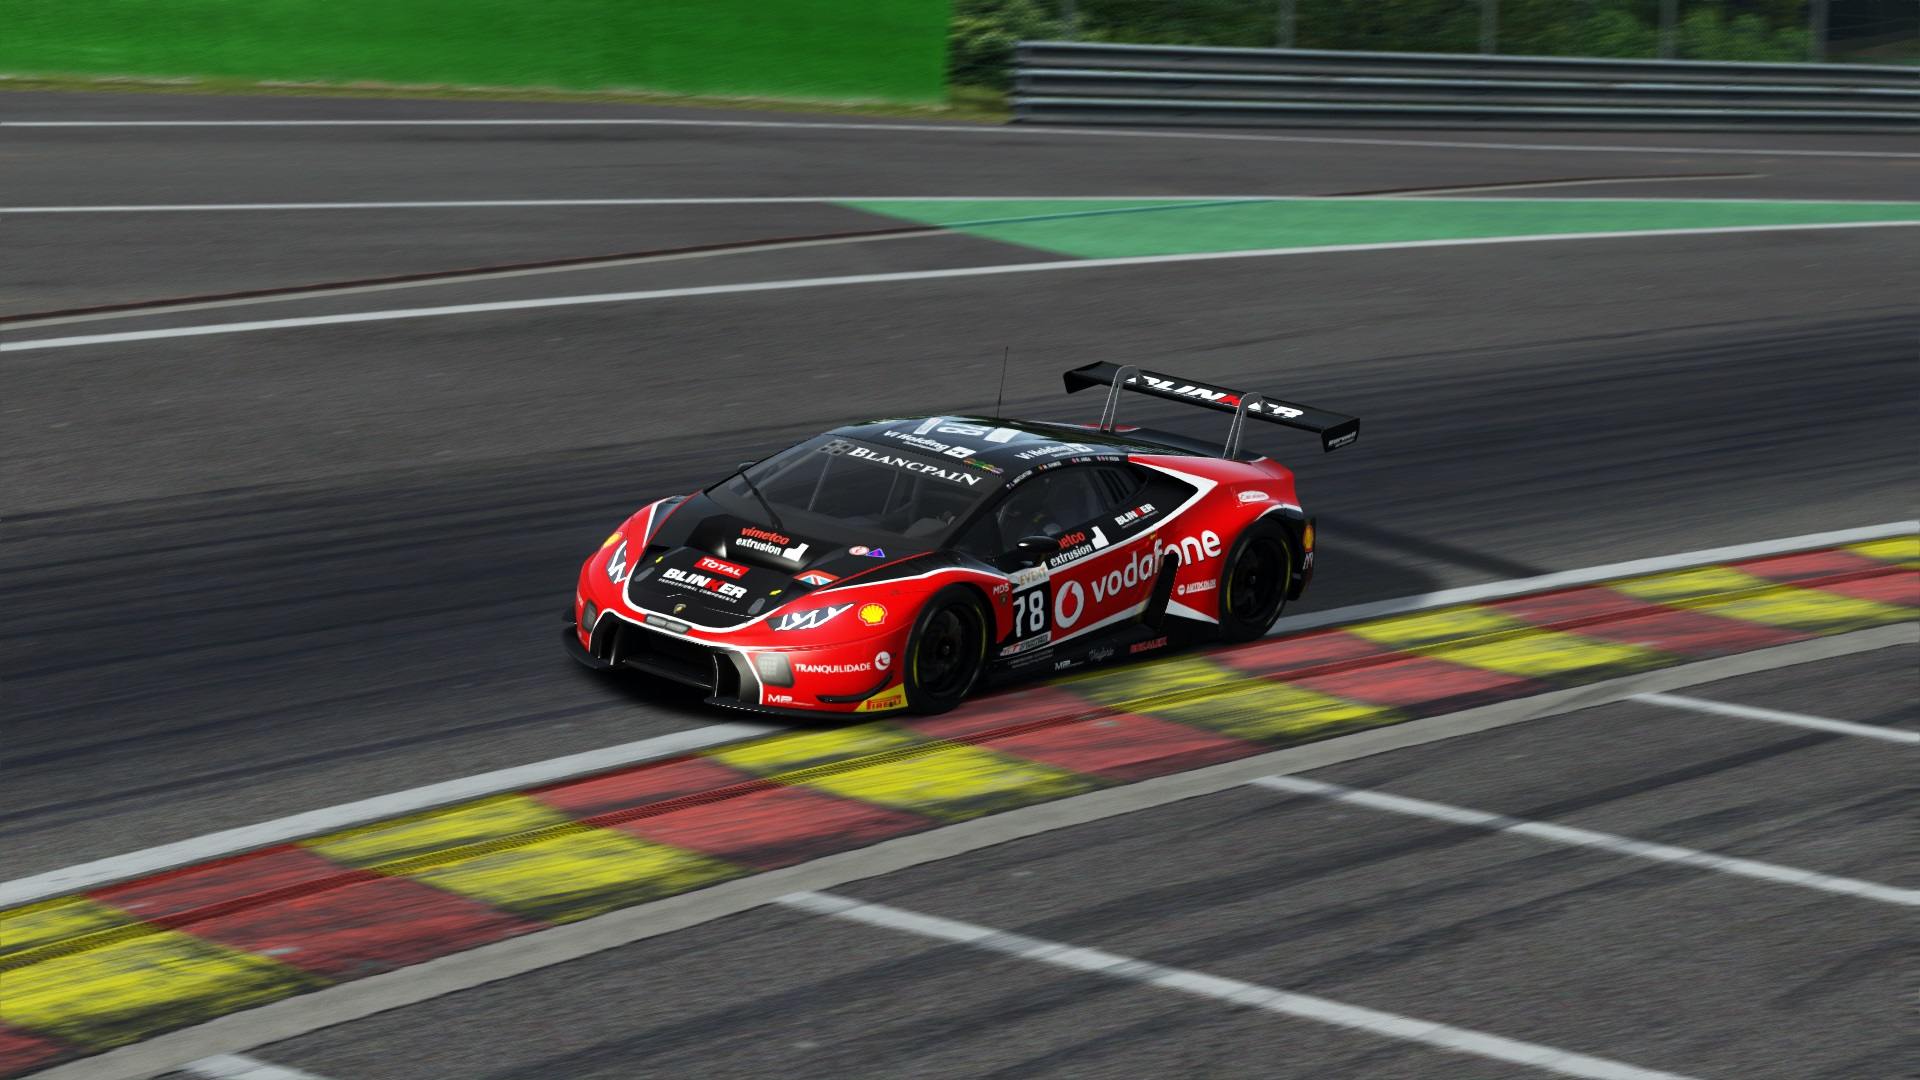 Screenshot_ks_lamborghini_huracan_gt3_spa_7-8-117-15-14-12.jpg